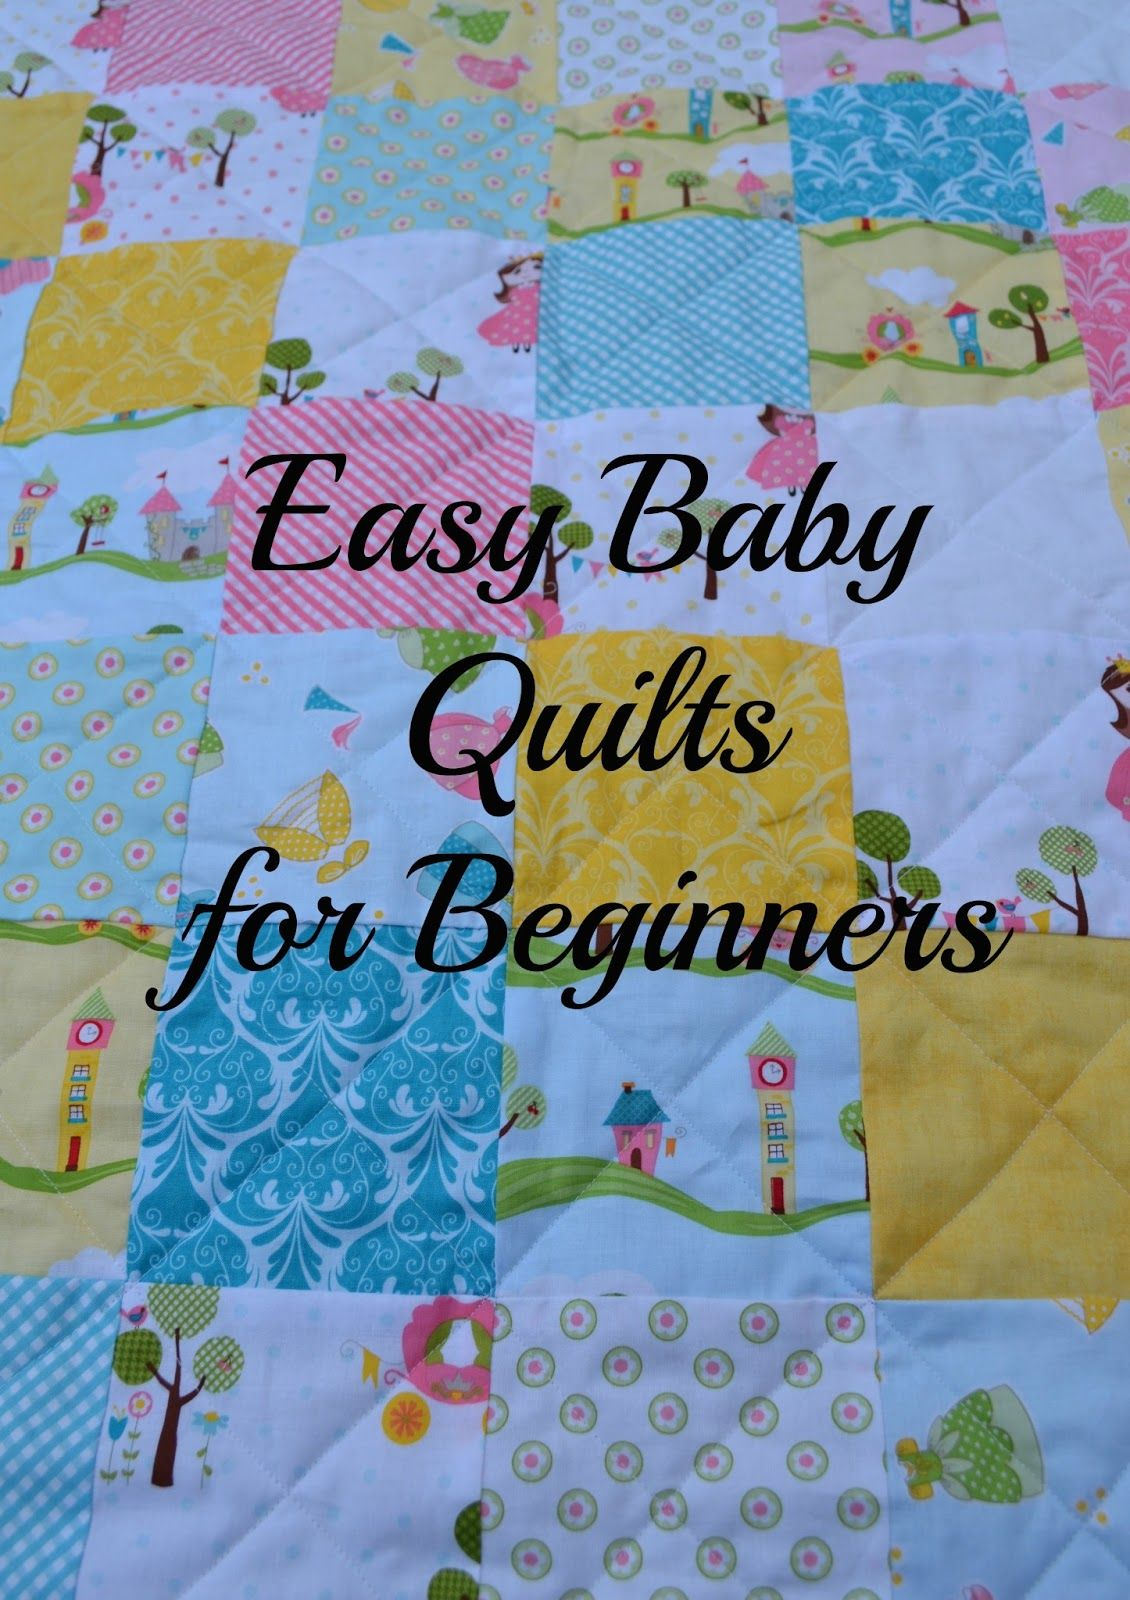 Easy Baby Quilts For Beginners~ Great Instructions! Great